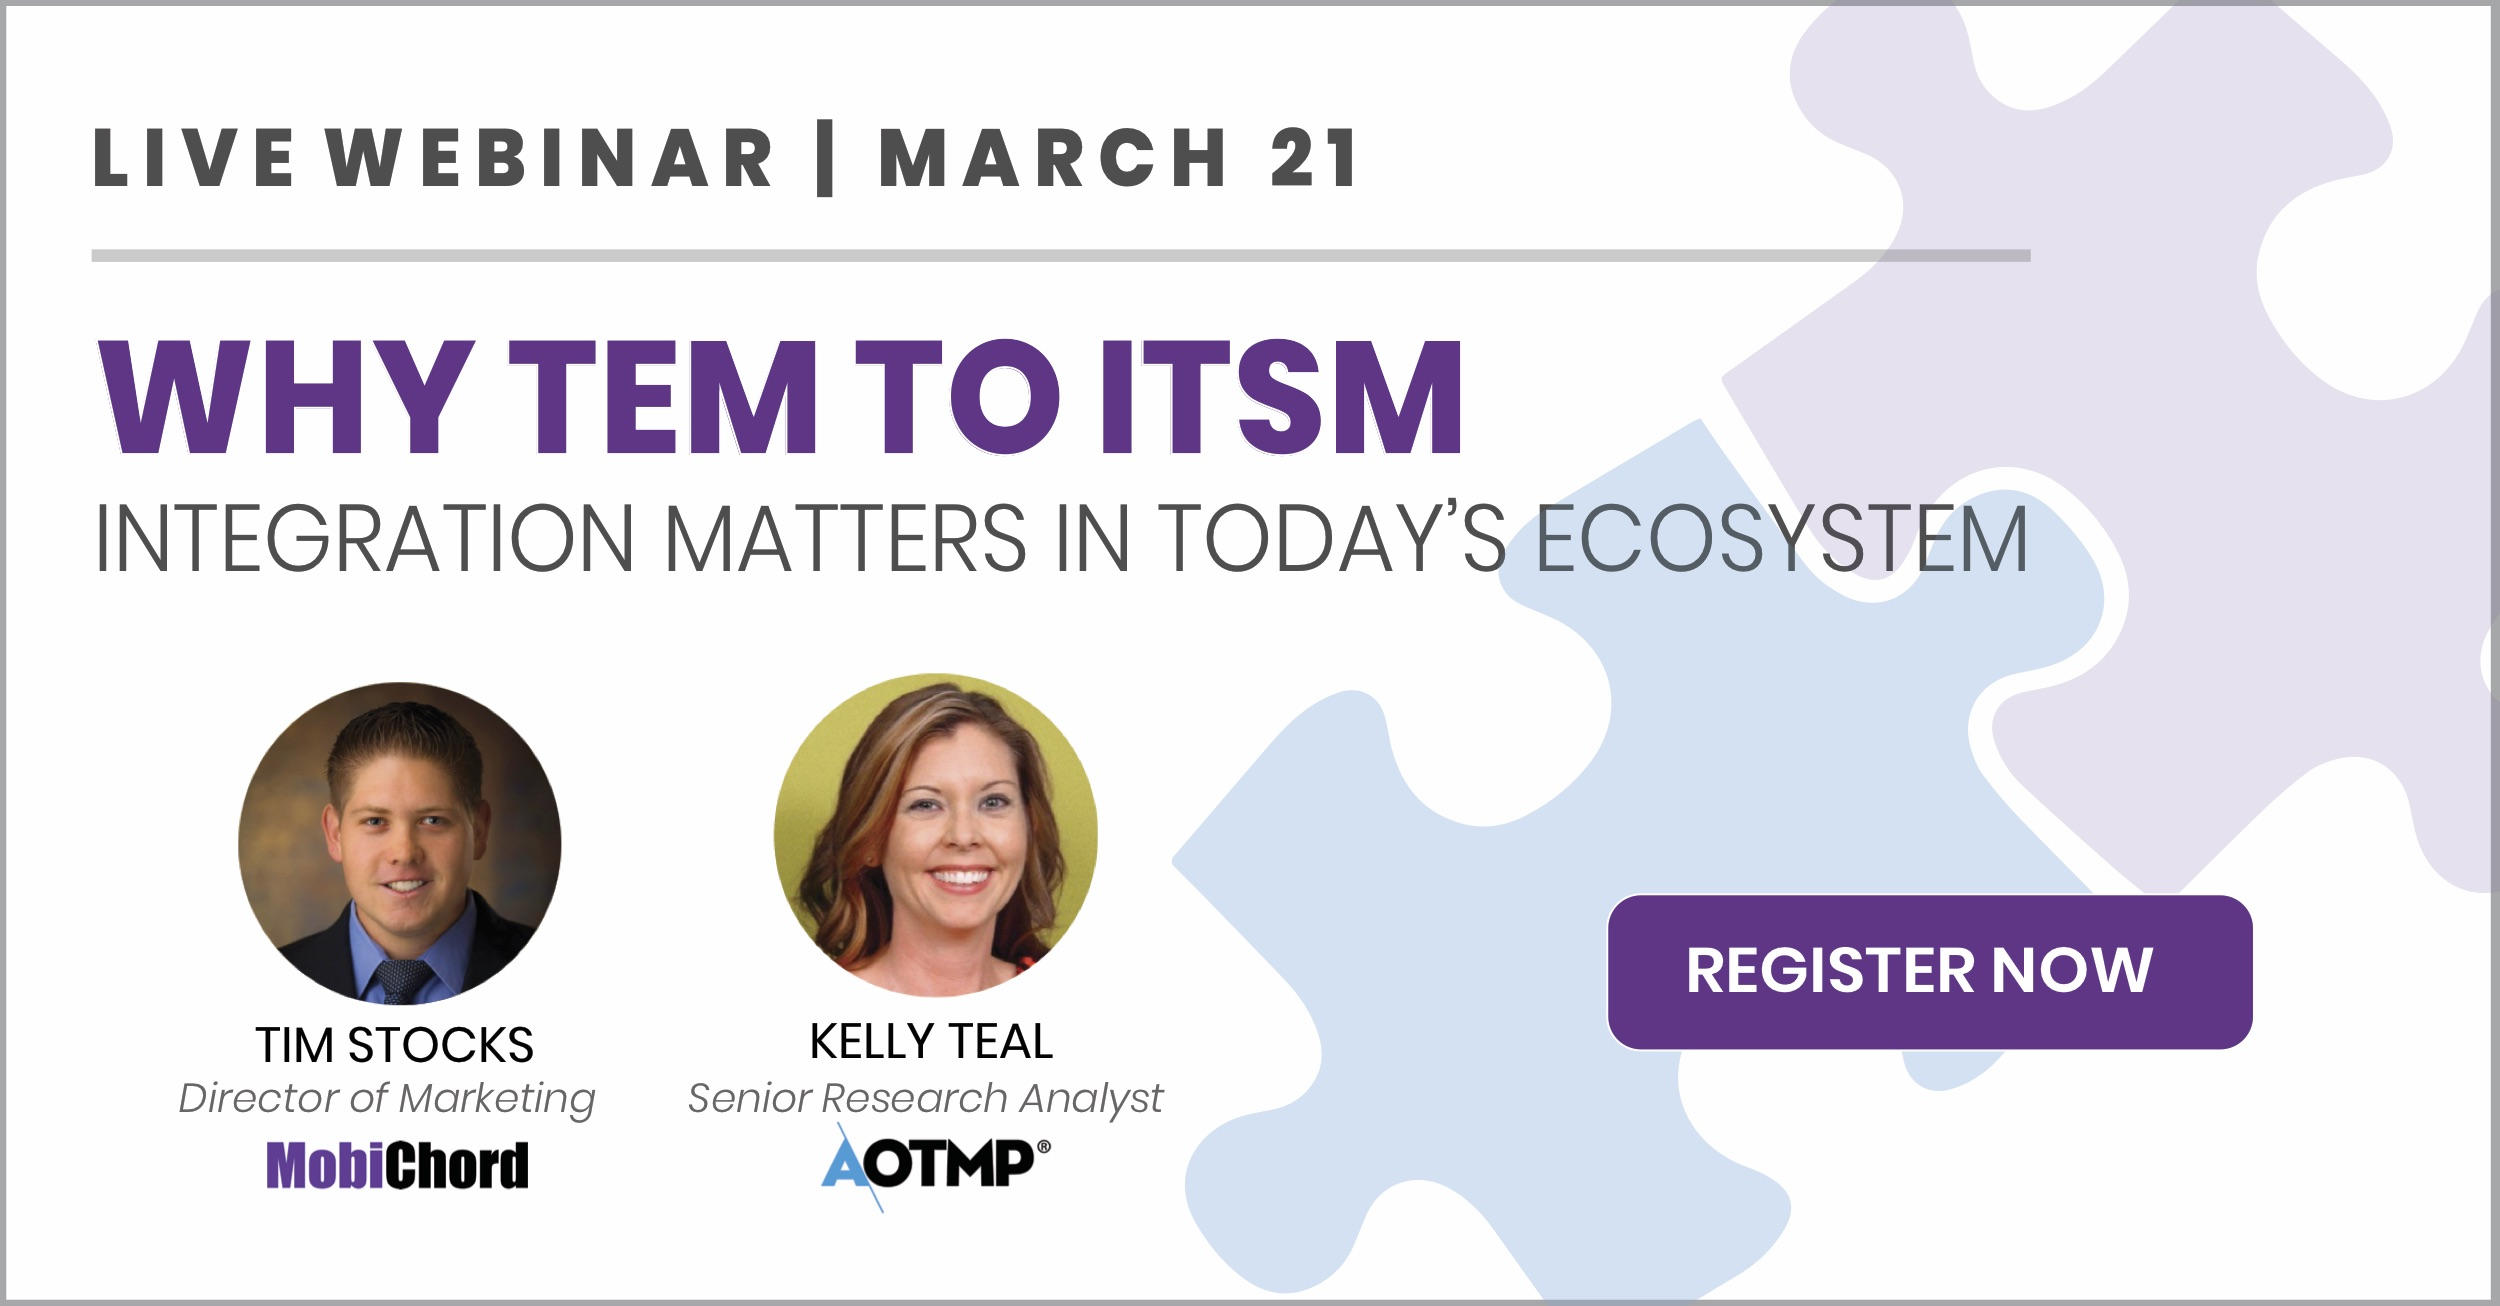 [Live Webinar] Why TEM to ITSM Integration Matters in Today's Ecosystem